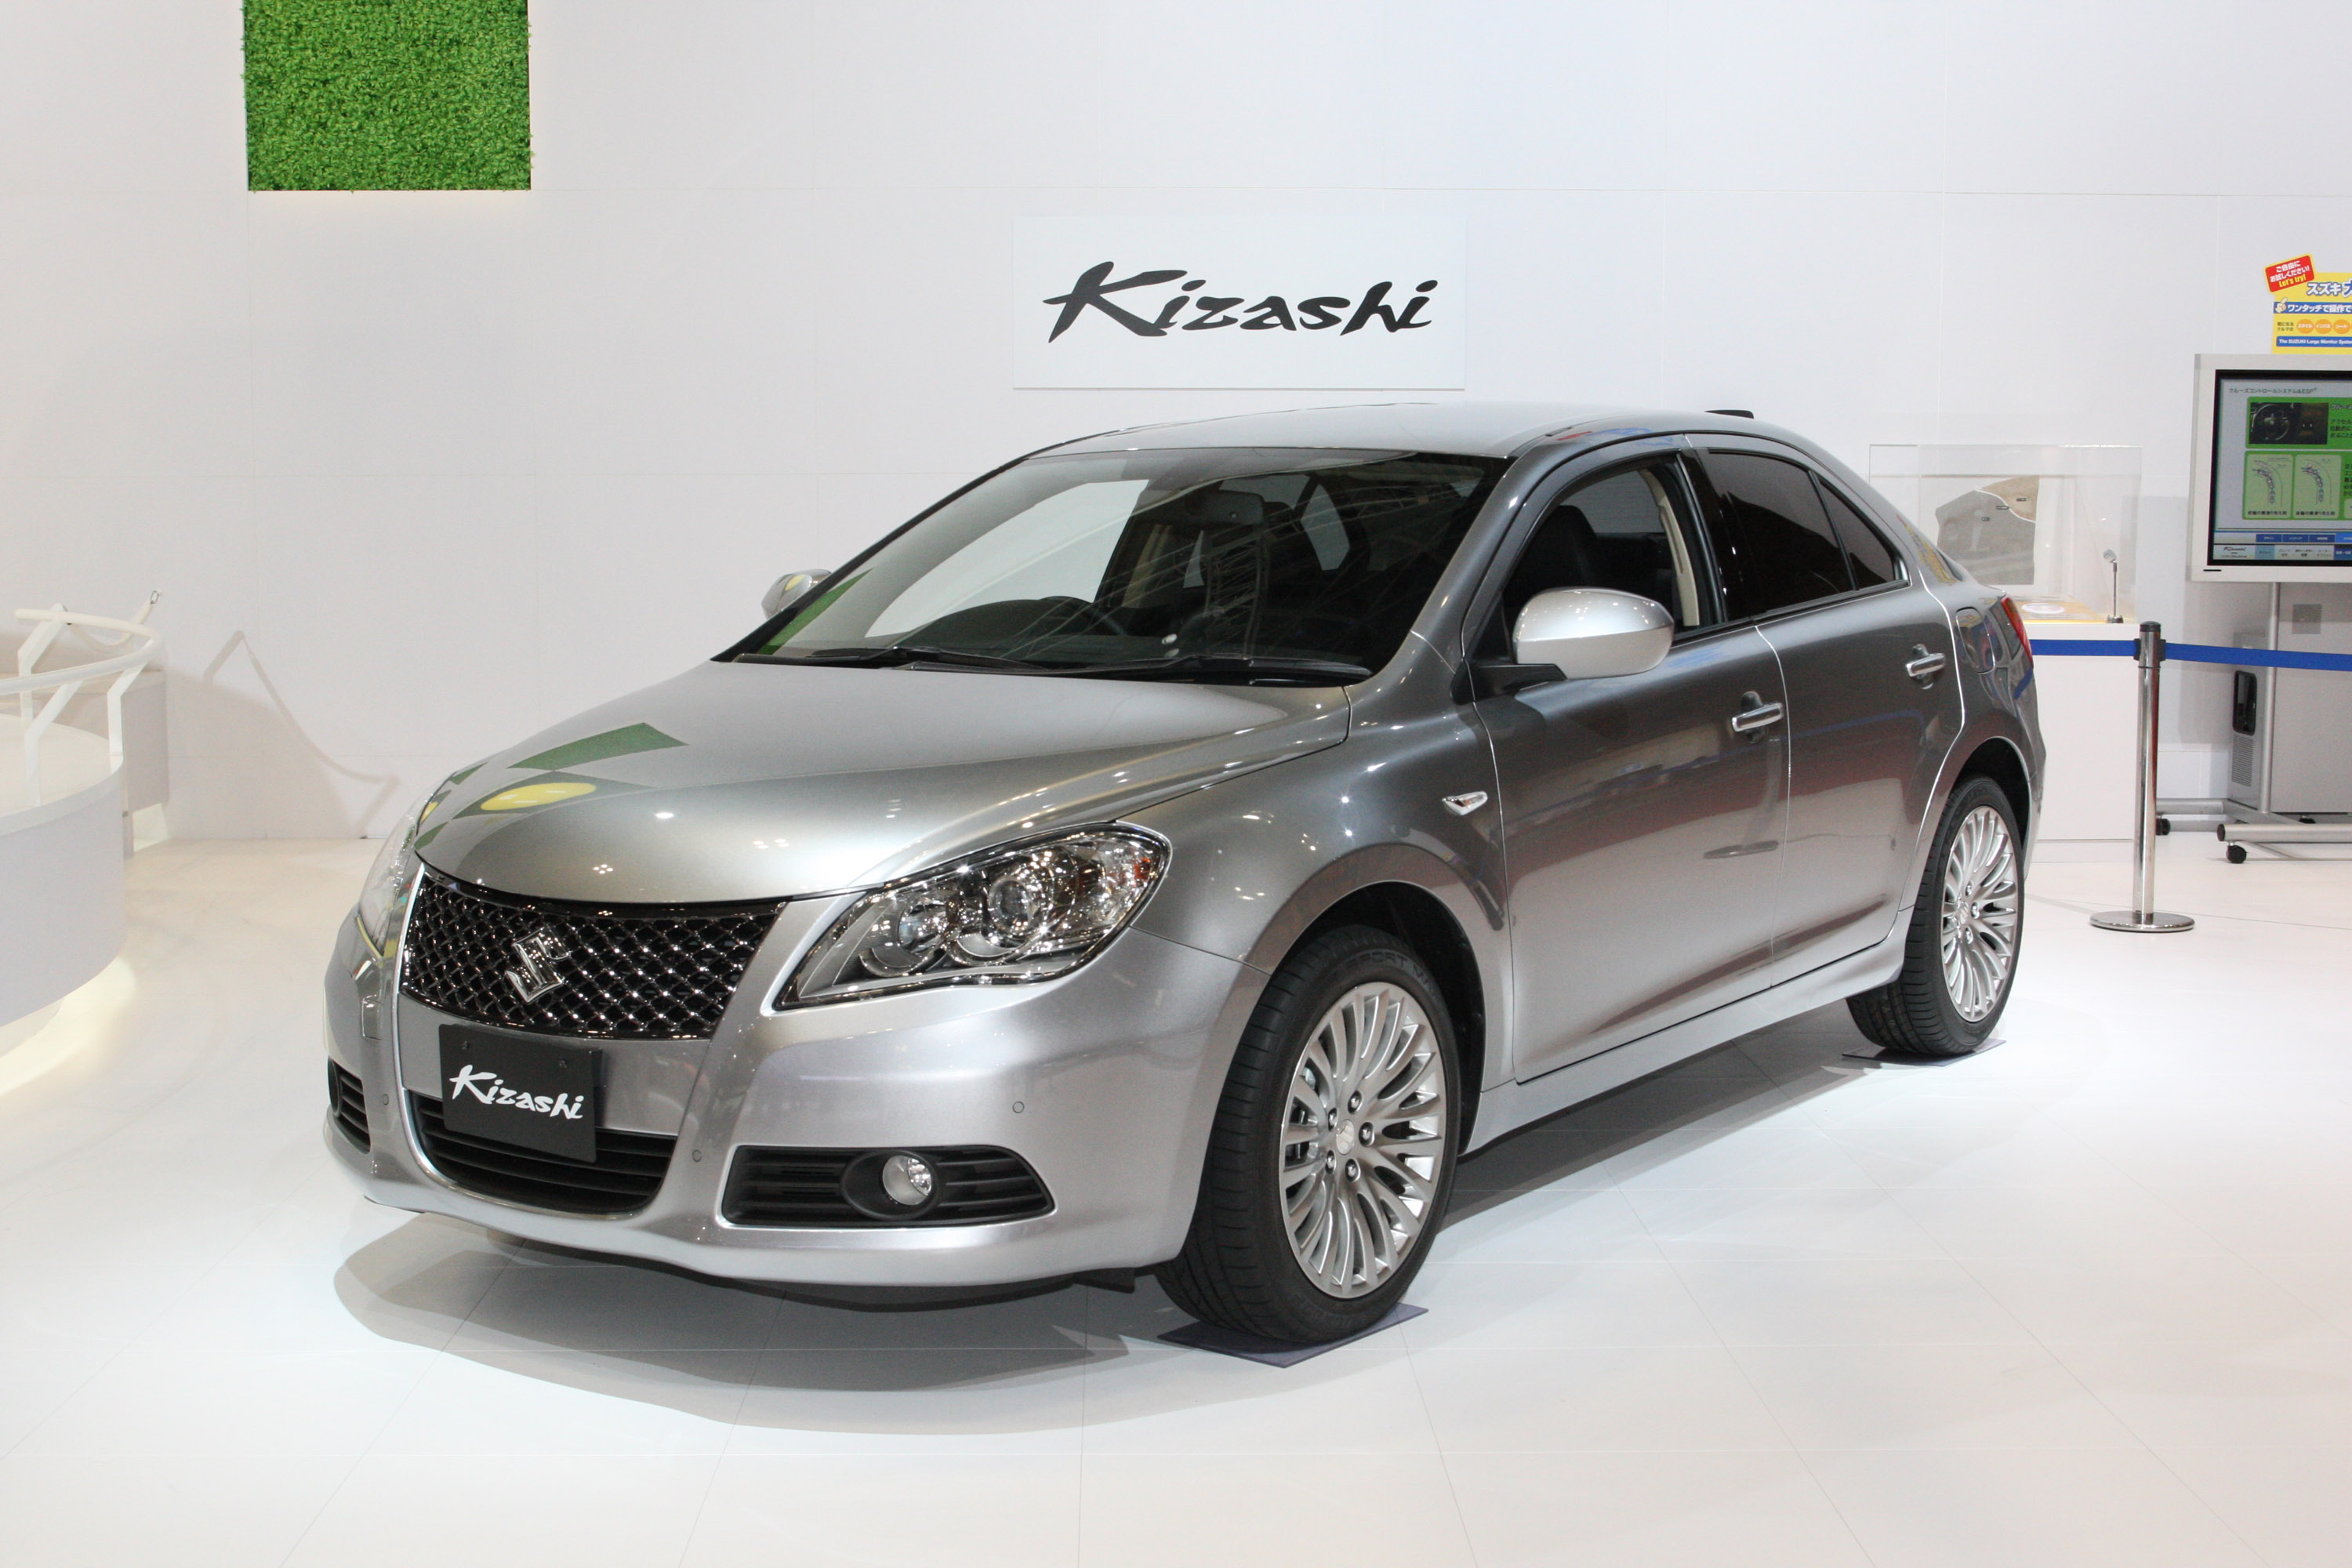 2015 Suzuki Kizashi Performance Review | 2017 - 2018 Best ...